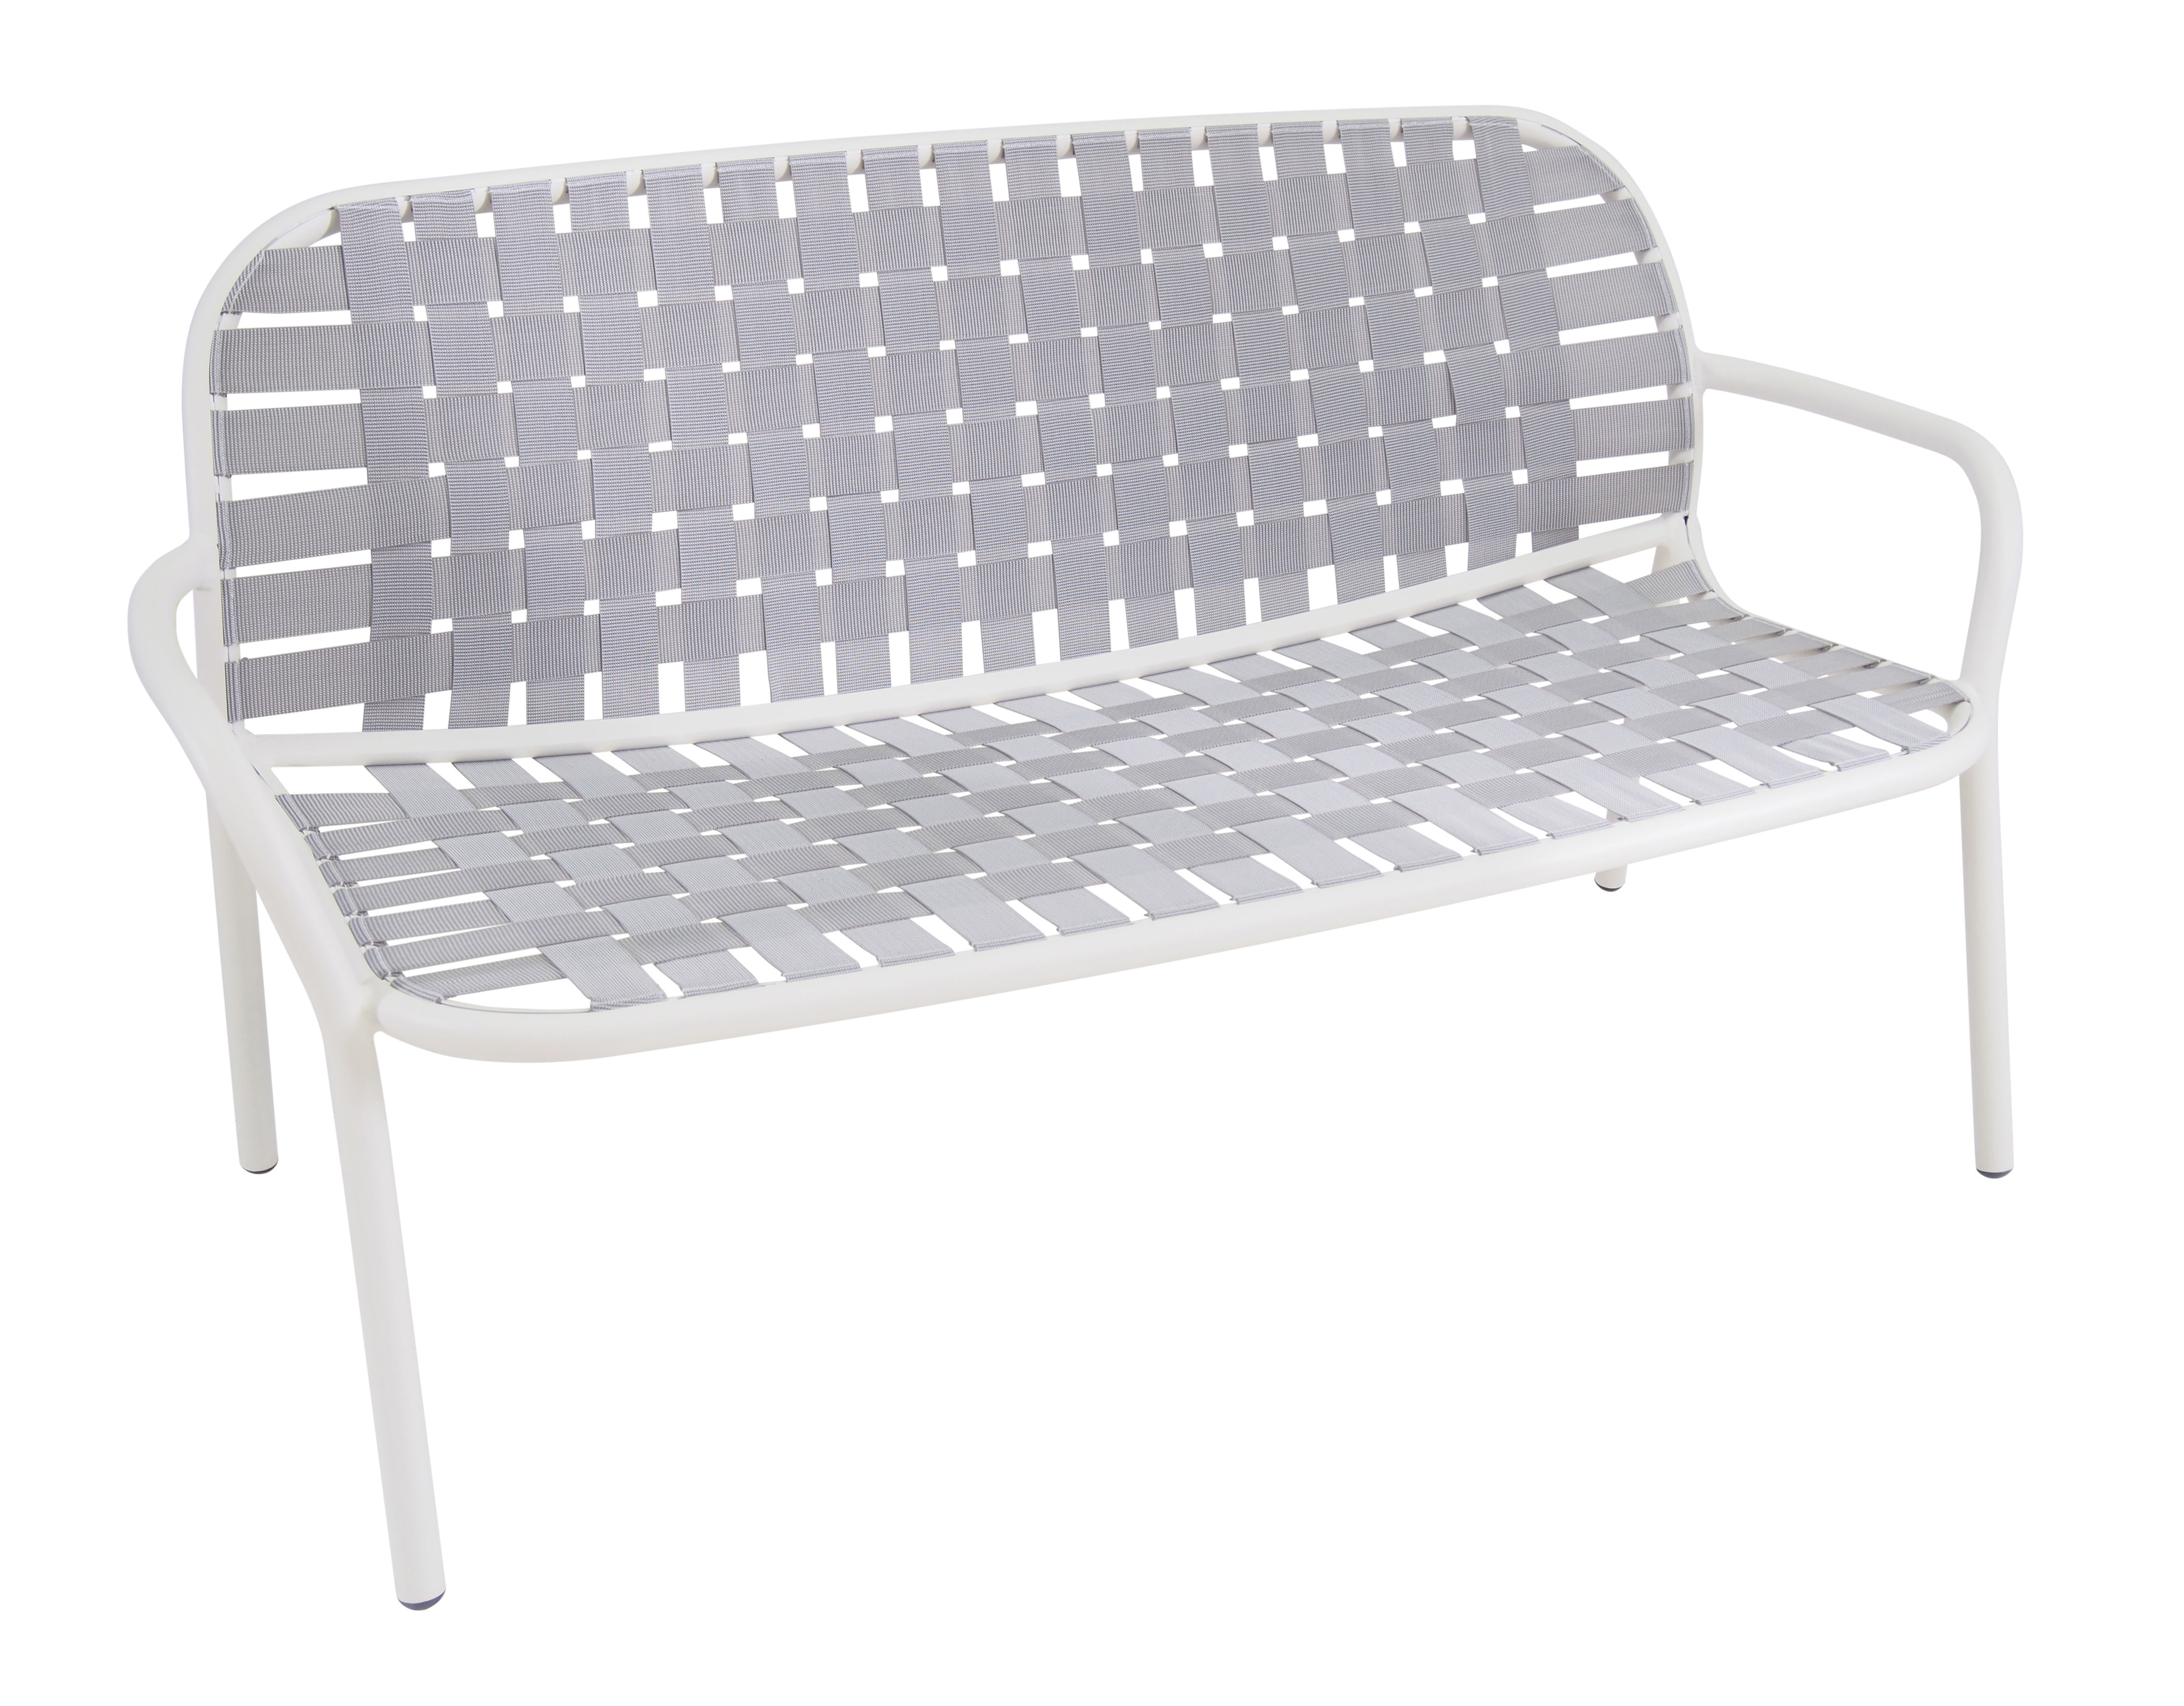 Furniture - Sofas - Yard Straight sofa - 2 guests - W 139 cm by Emu - White structure / Grey straps - Elastic straps, Varnished aluminium